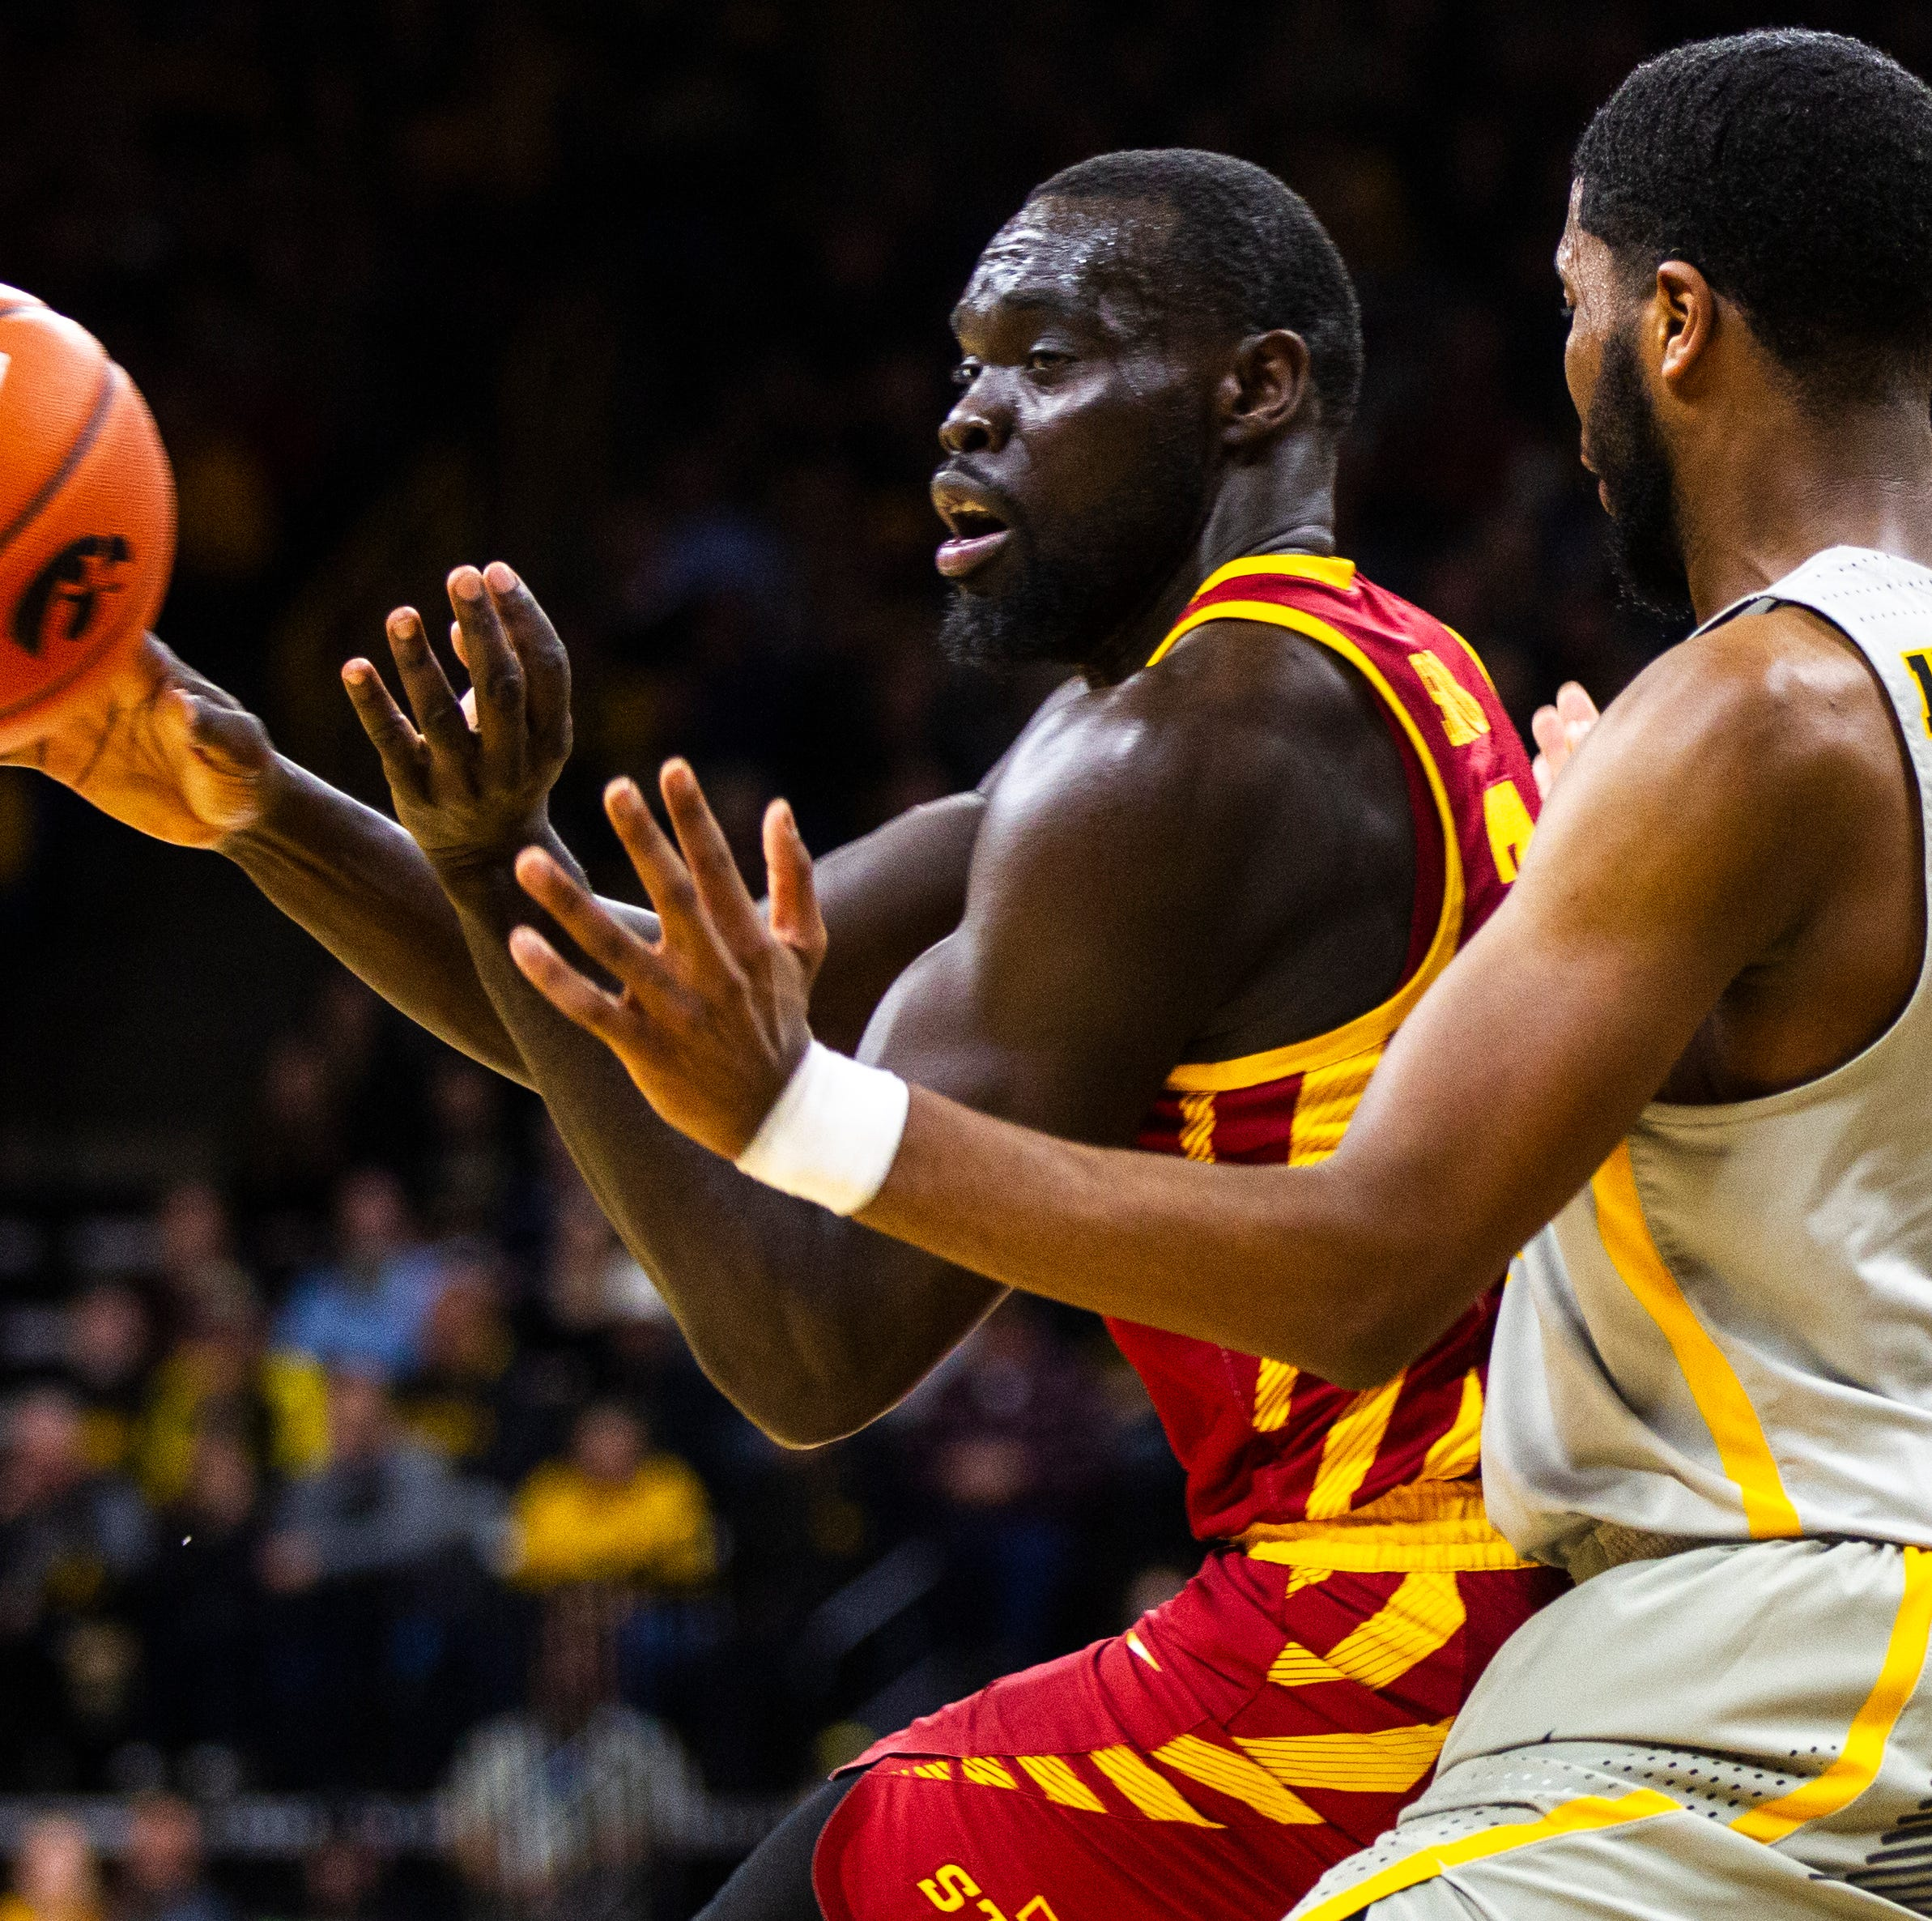 The day after: Assessing how things played out in Iowa State's first true road game